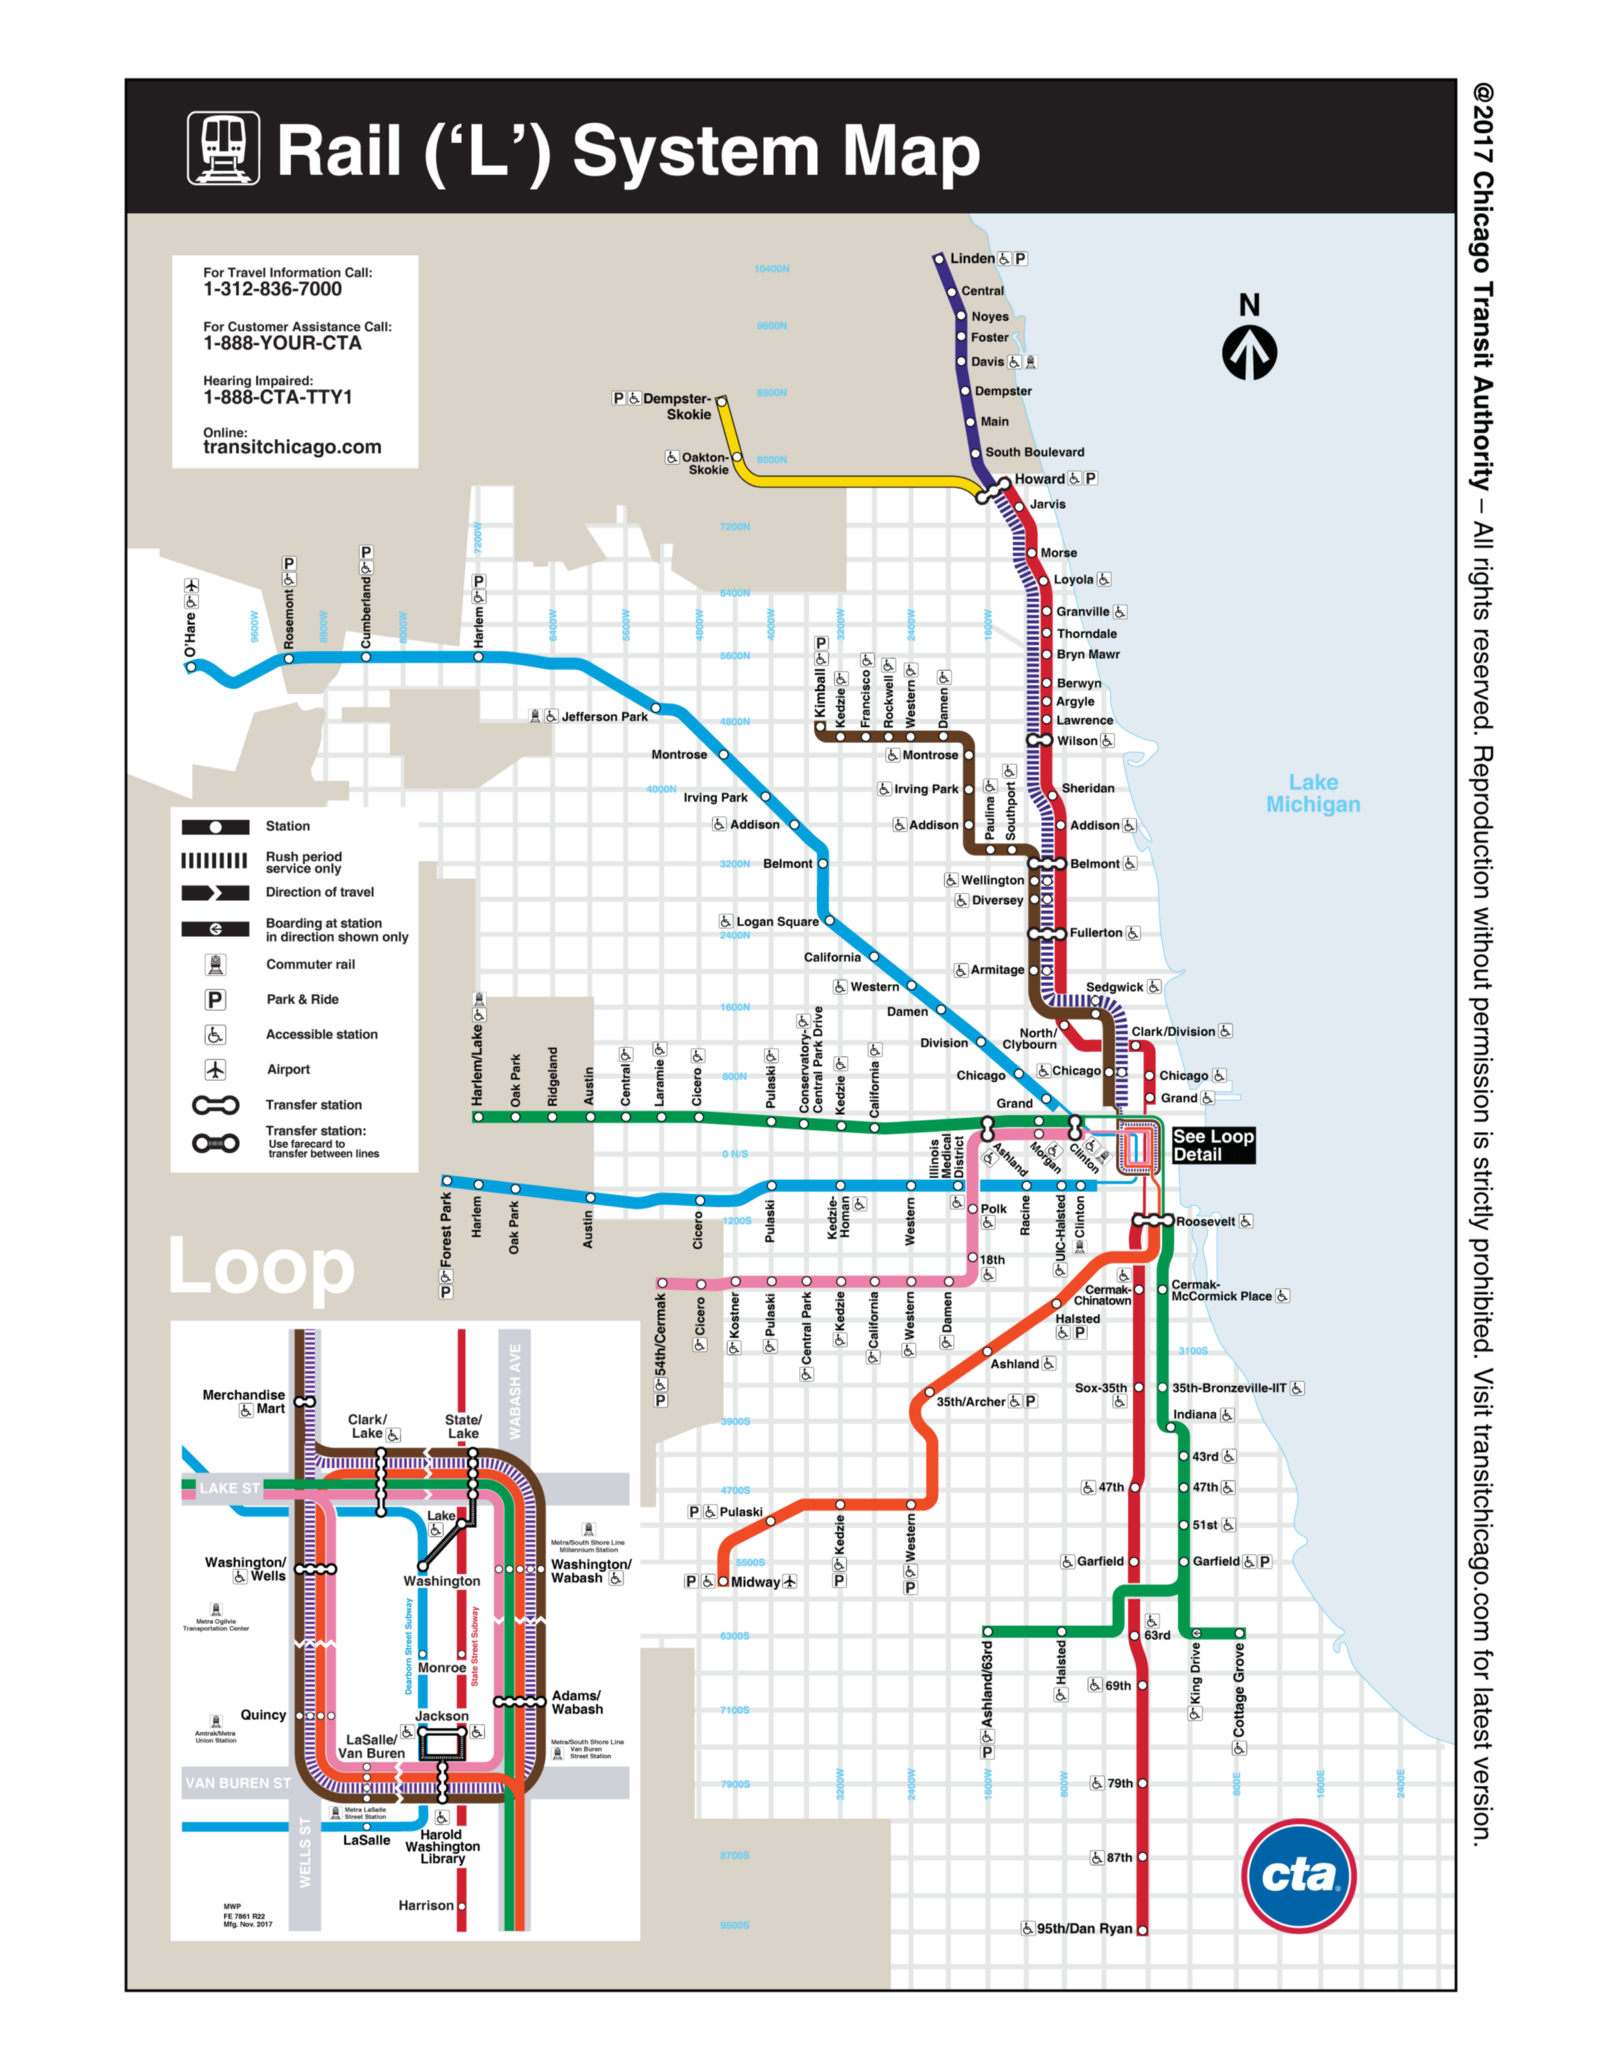 Transit Chicago Map.Exploring And Visualizing Chicago Transit Data Using Pandas And